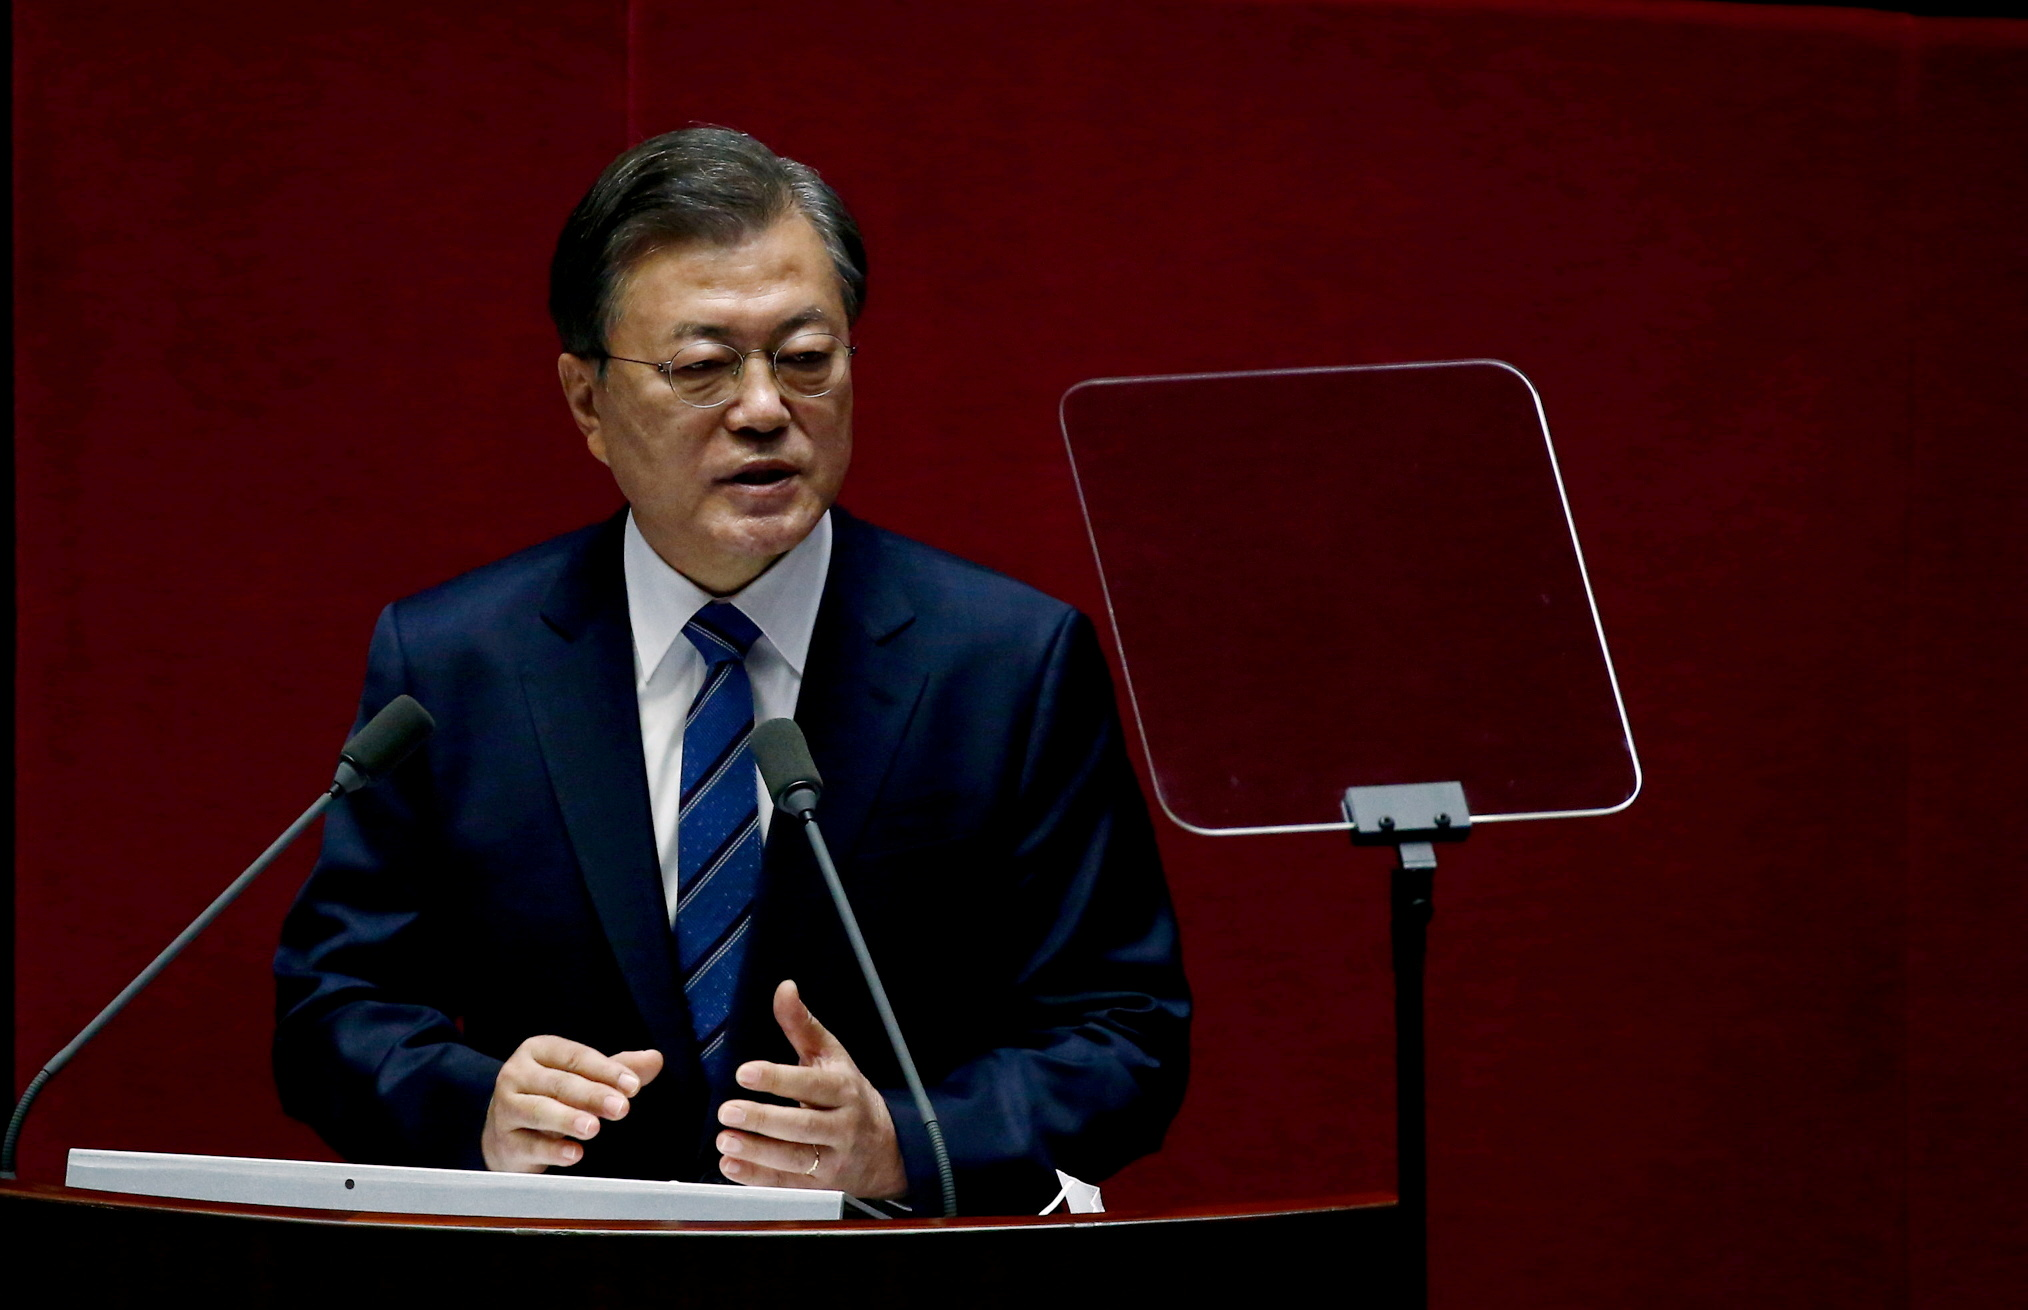 South Korean President Moon Jae-in speaks at the National Assembly in Seoul, South Korea, October 28, 2020. Jeon Heon-Kyun/Pool via REUTERS/File Photo/File Photo